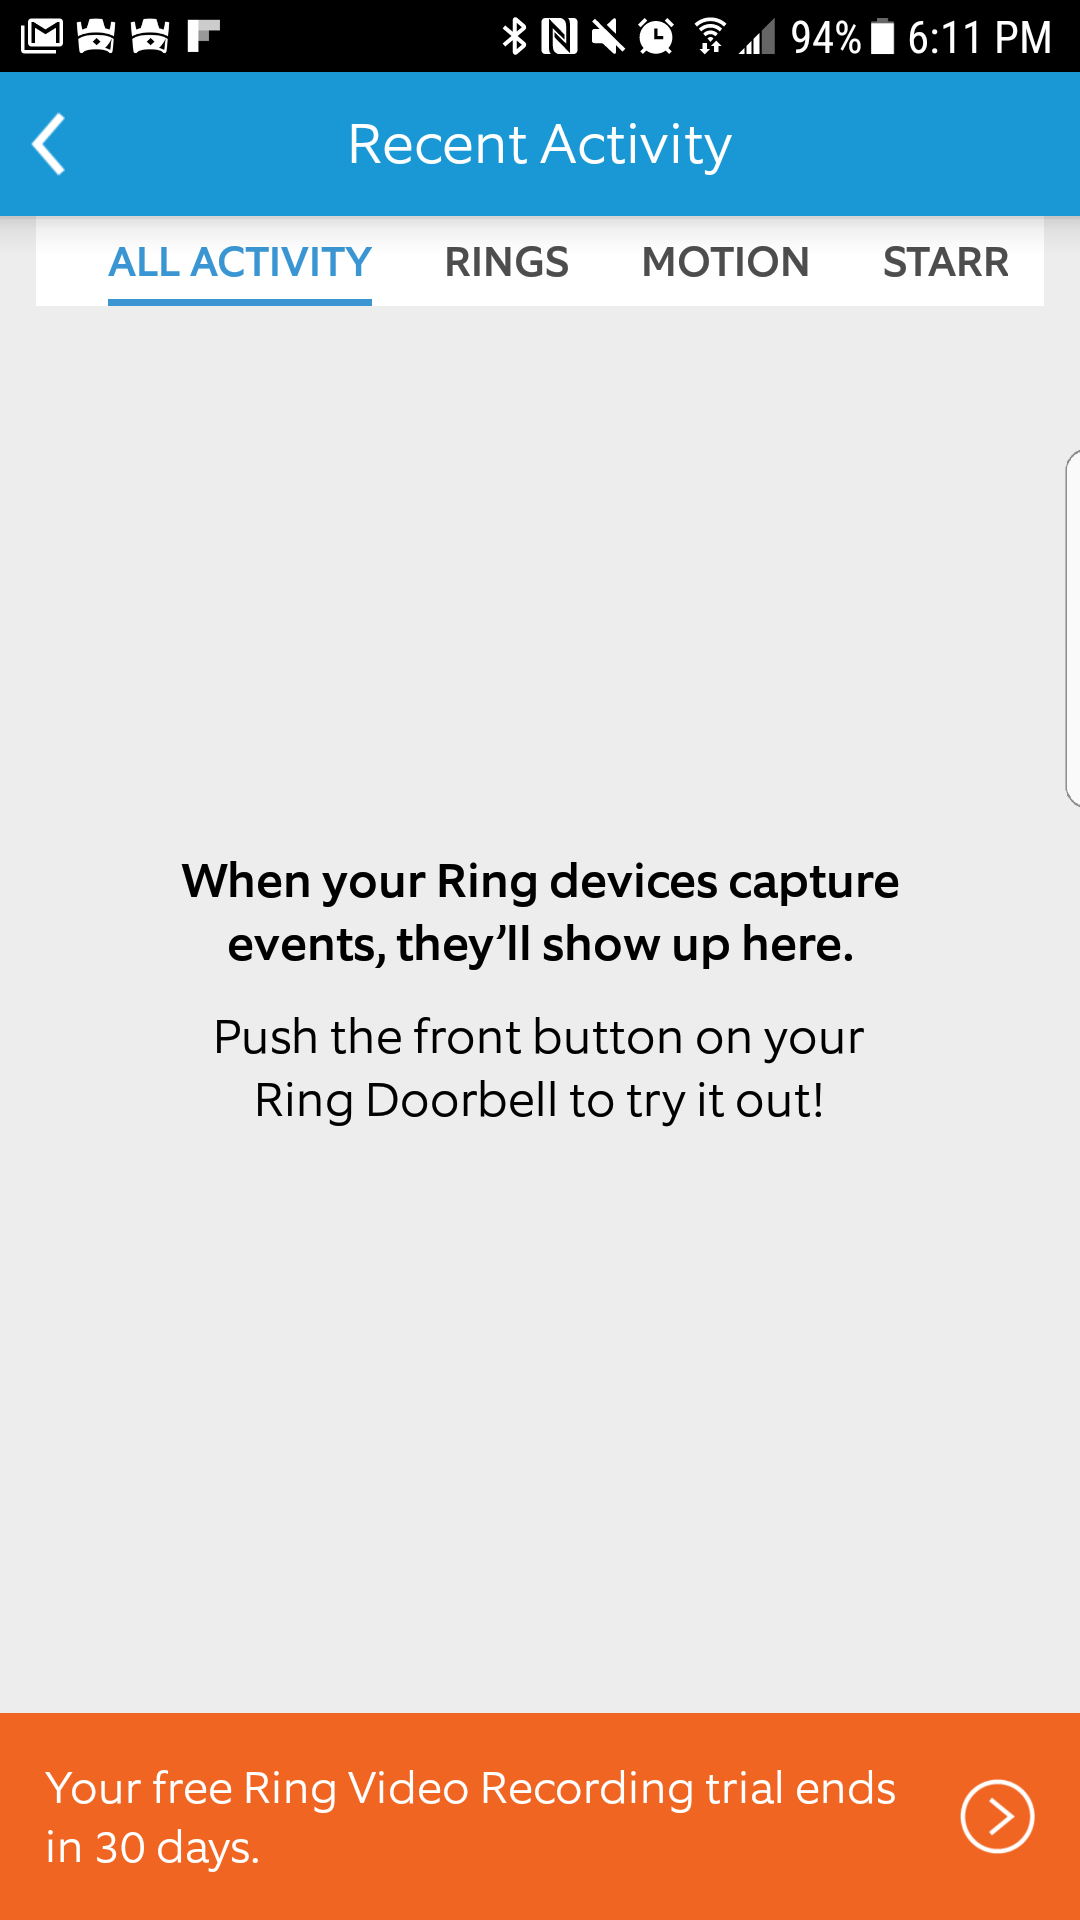 Ring Video Doorbell - Ring Mobile Application | Smarter Home Automation